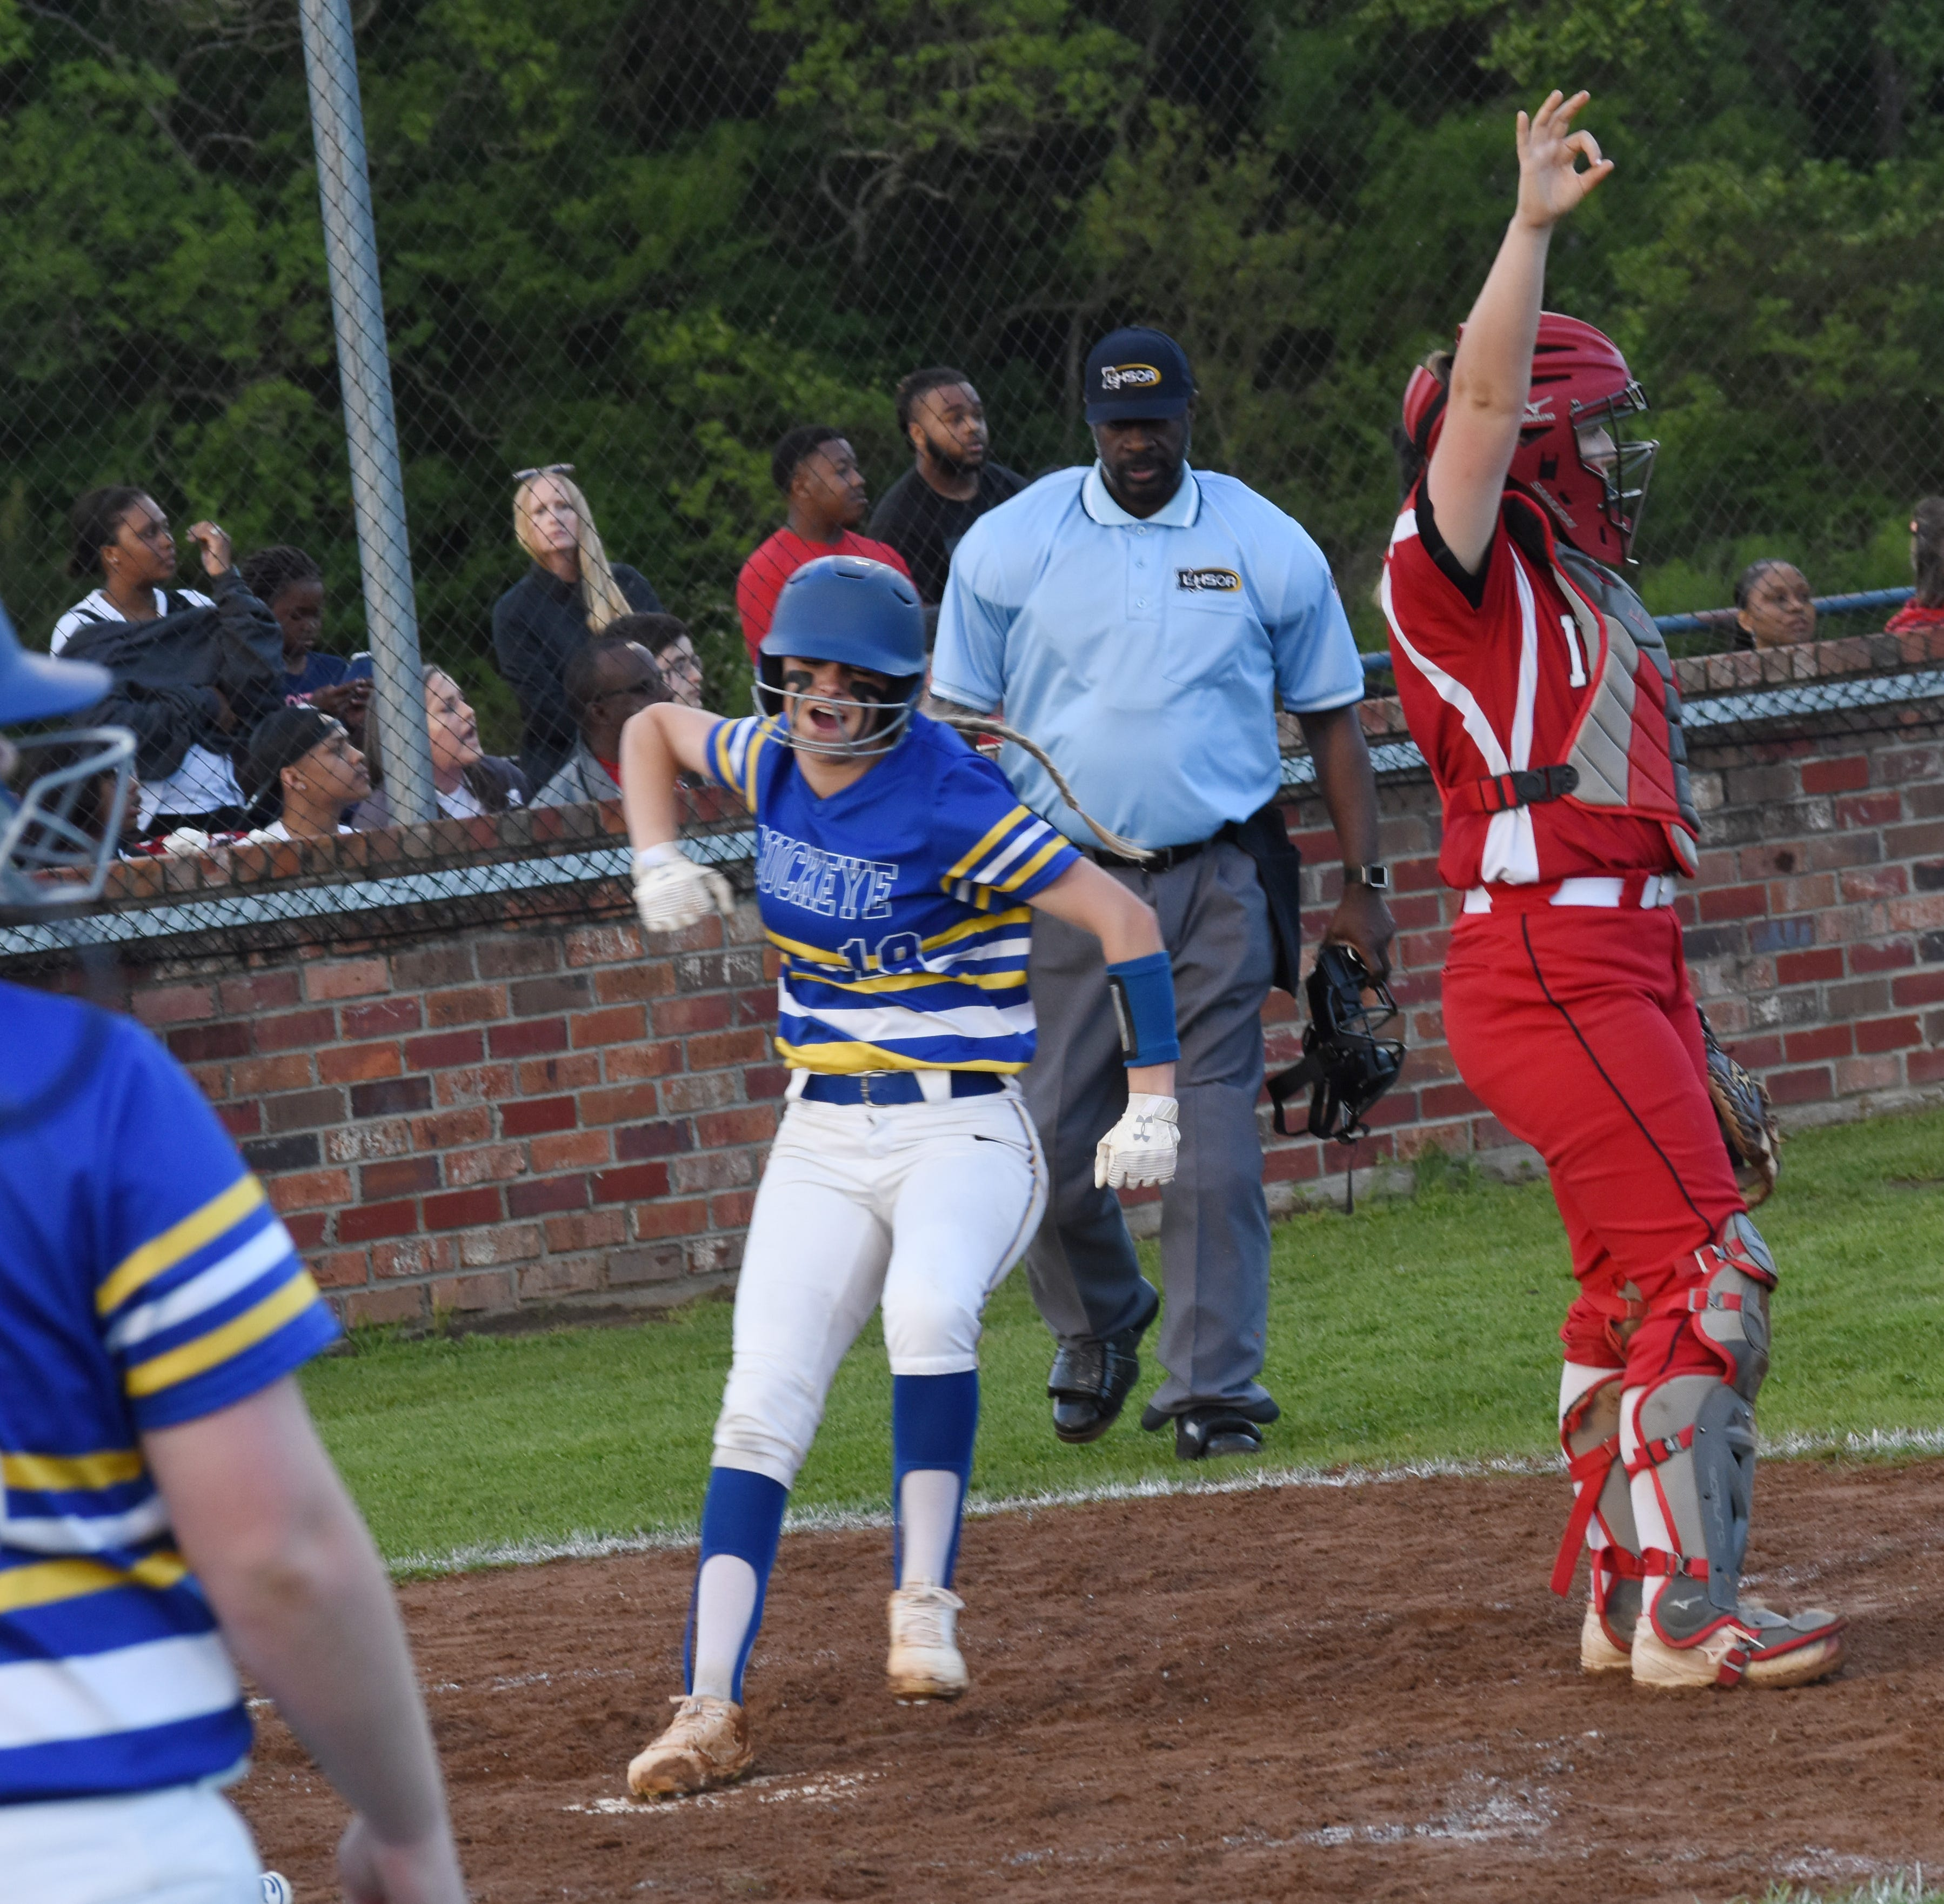 Buckeye returns to Sulphur thanks to Edgeworth's walkoff hit against Tioga